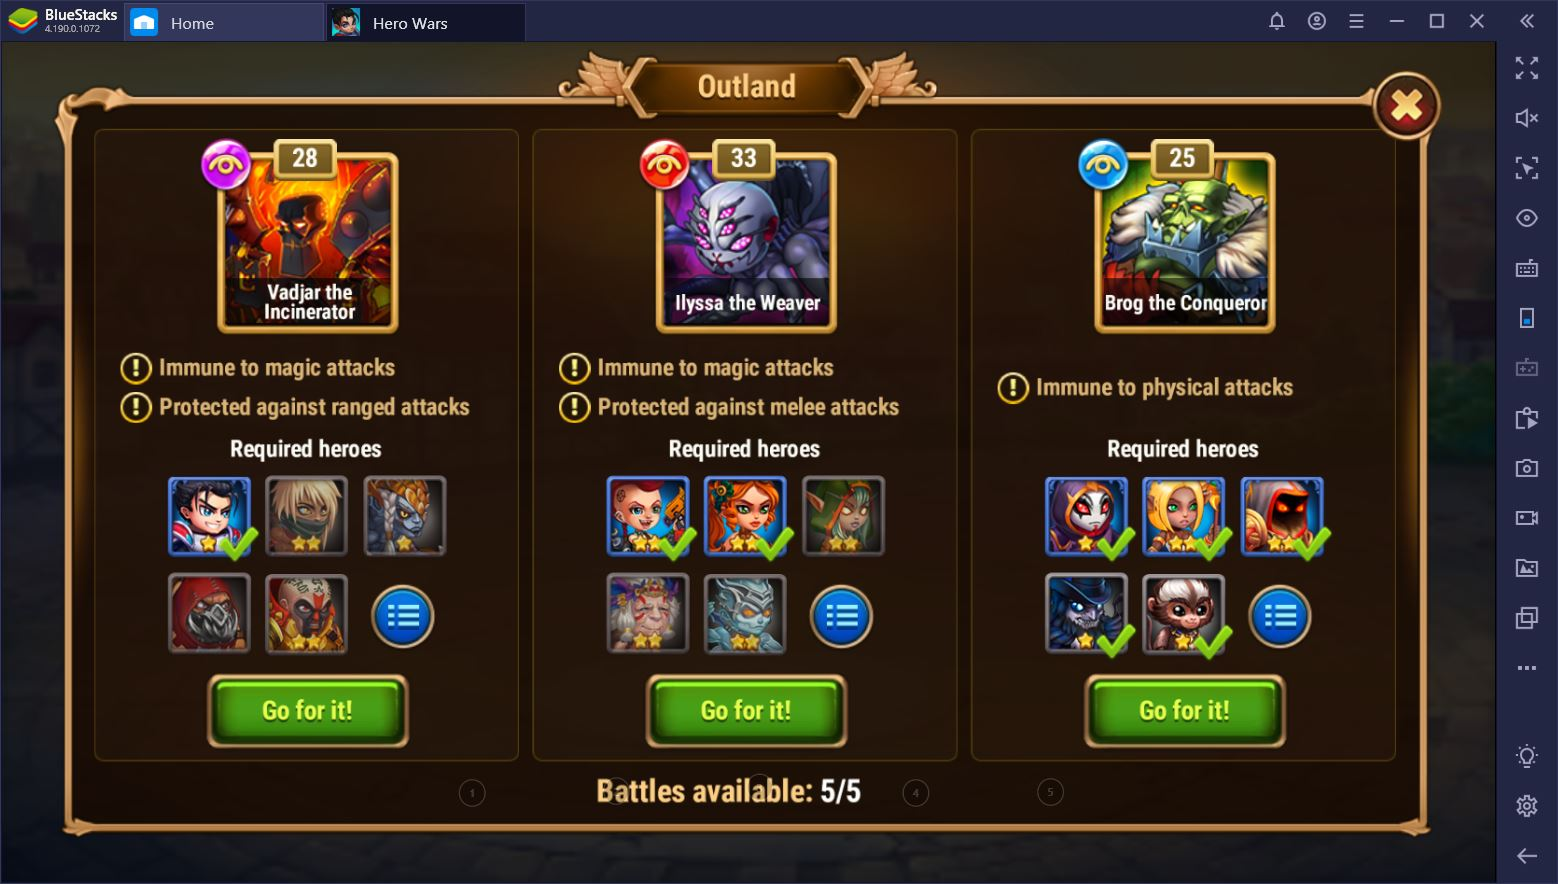 Hero Wars on PC – Guide to the Best Skins